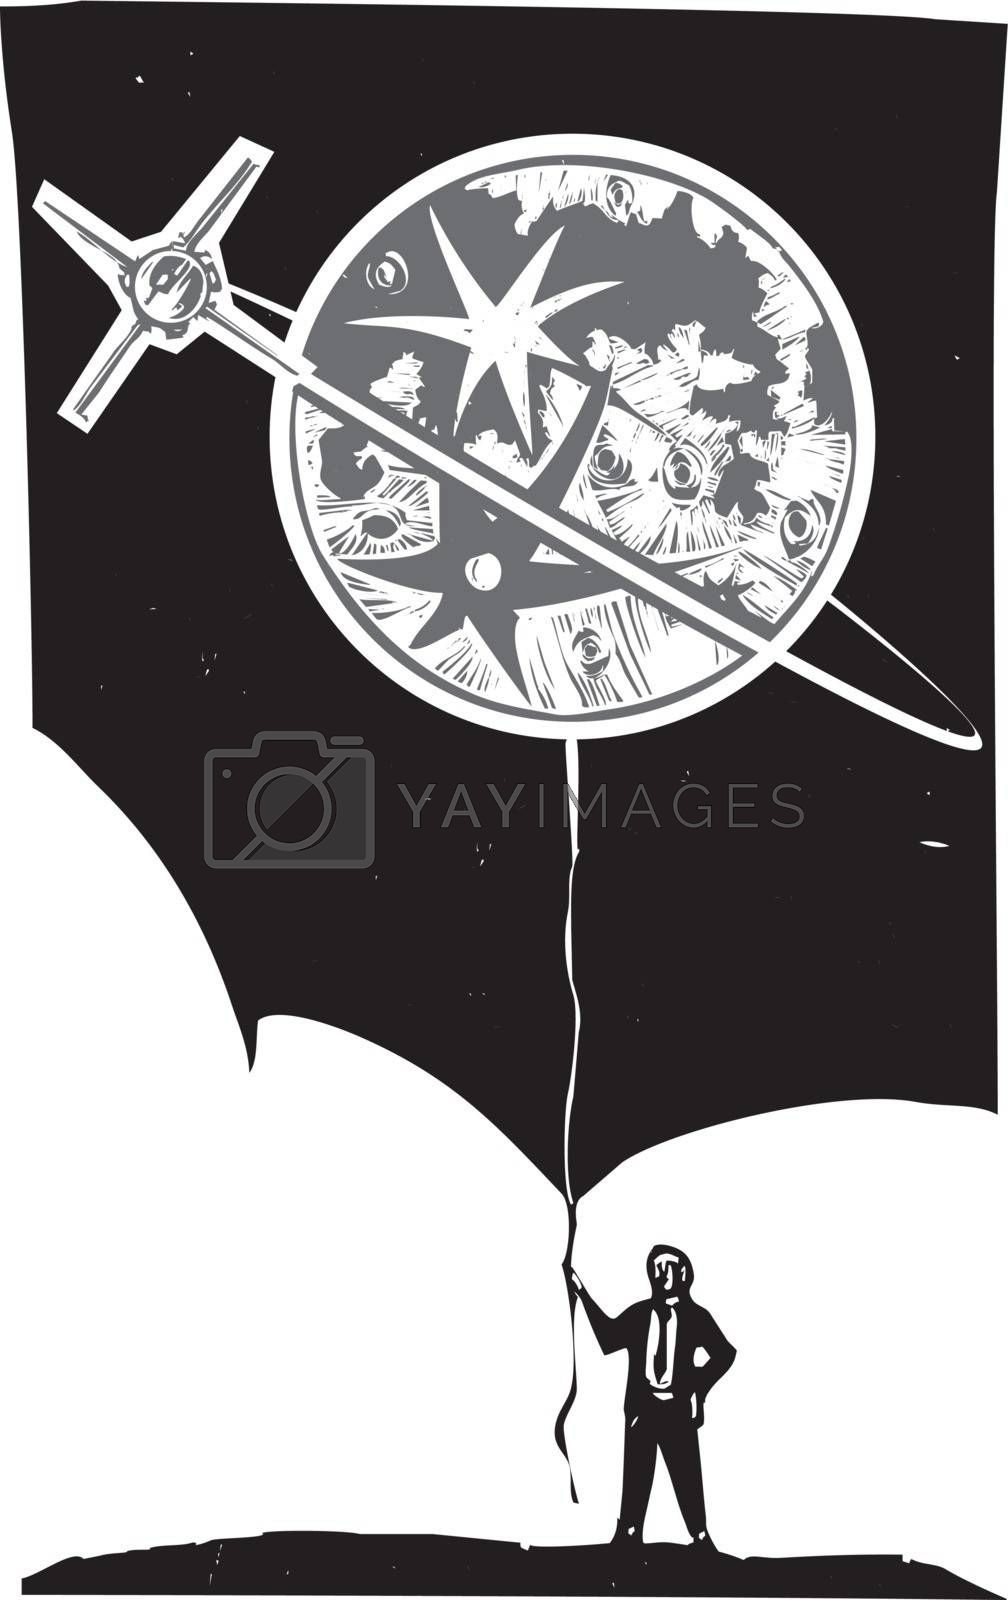 Woodcut style image of a man in a business suit holding a moon shaped balloon with an orbiting satellite